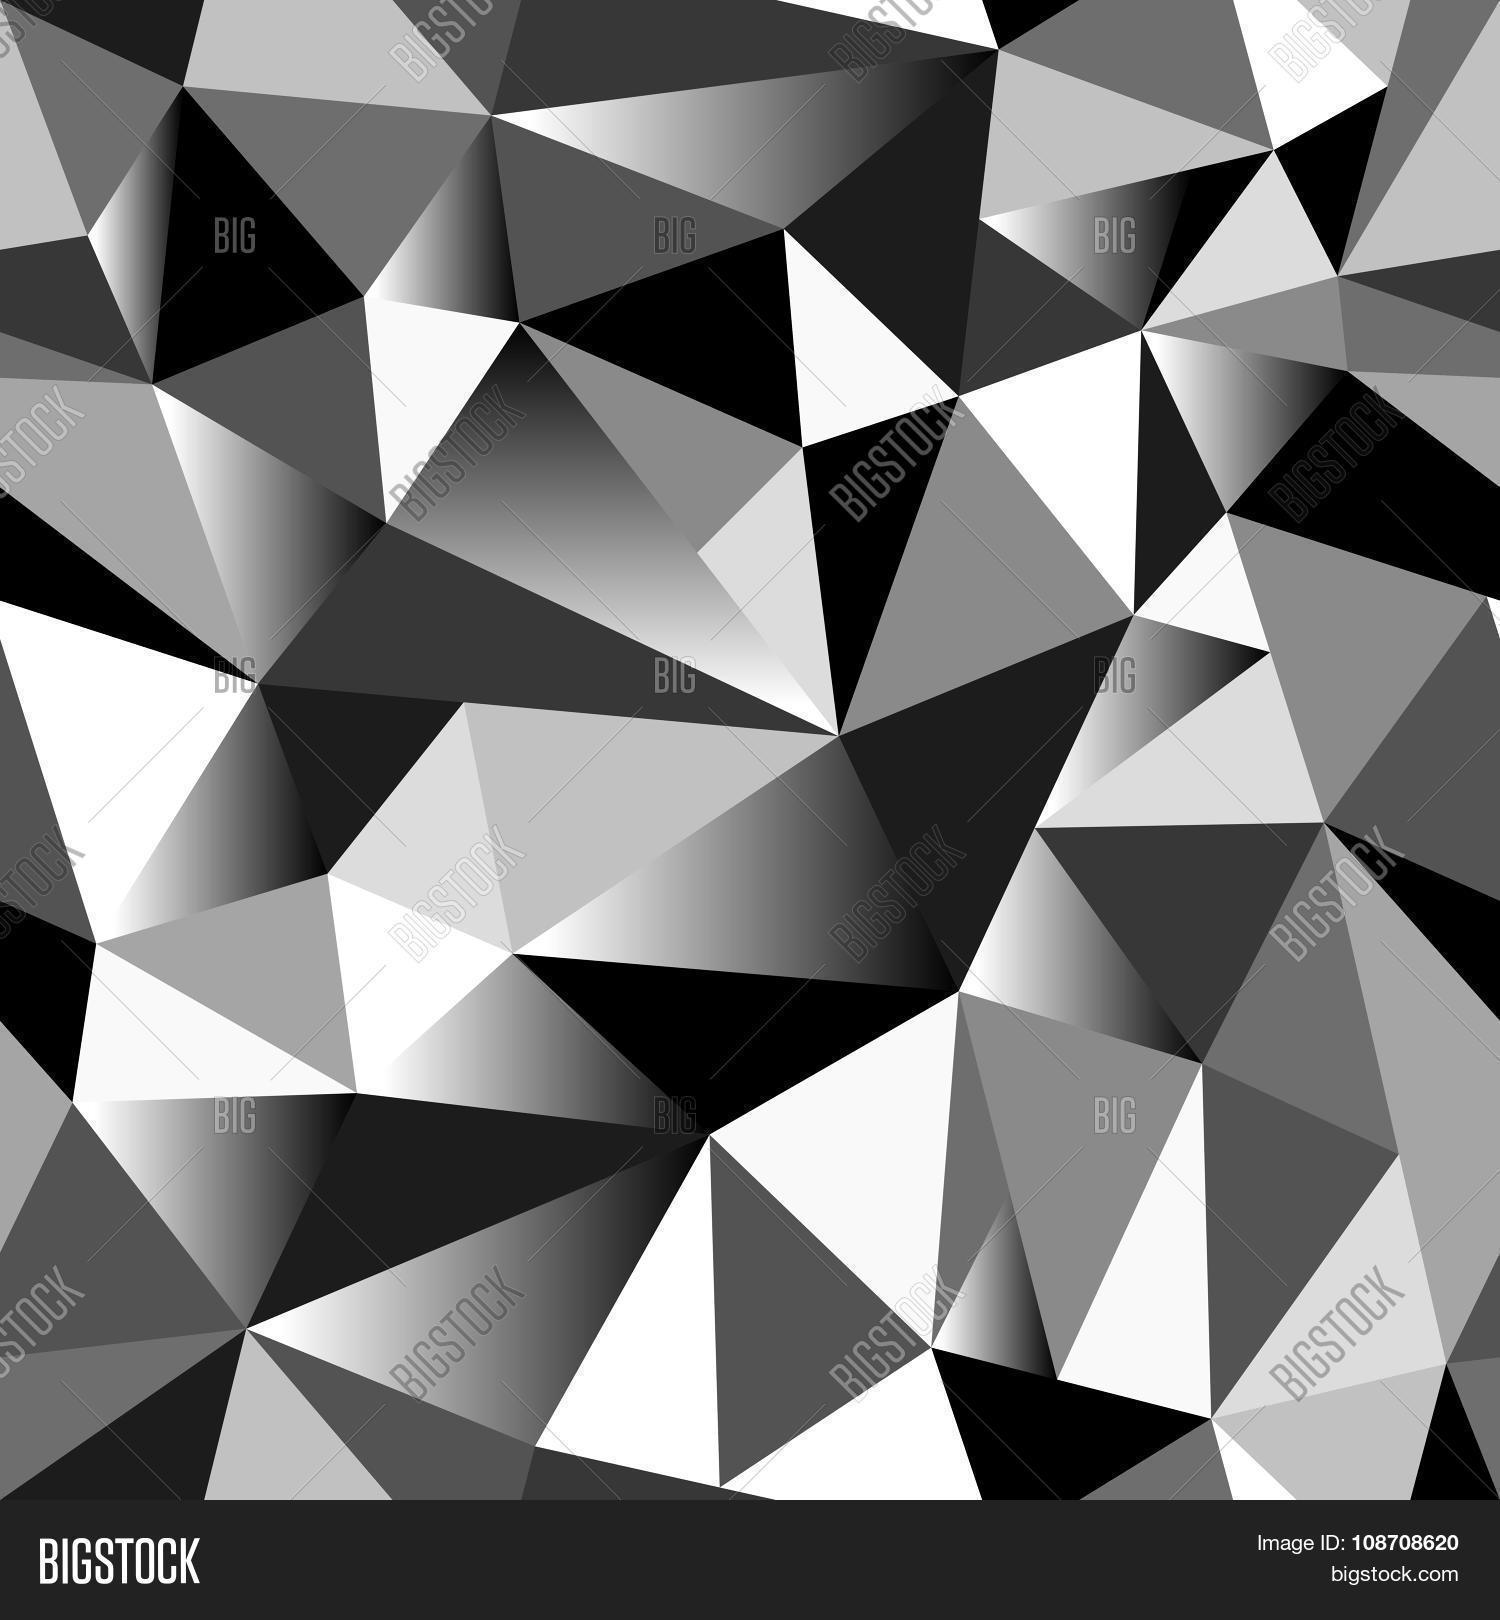 Background image grayscale - Abstract Grayscale Gradient Geometric Rumpled Triangular Seamless Low Poly Style Background